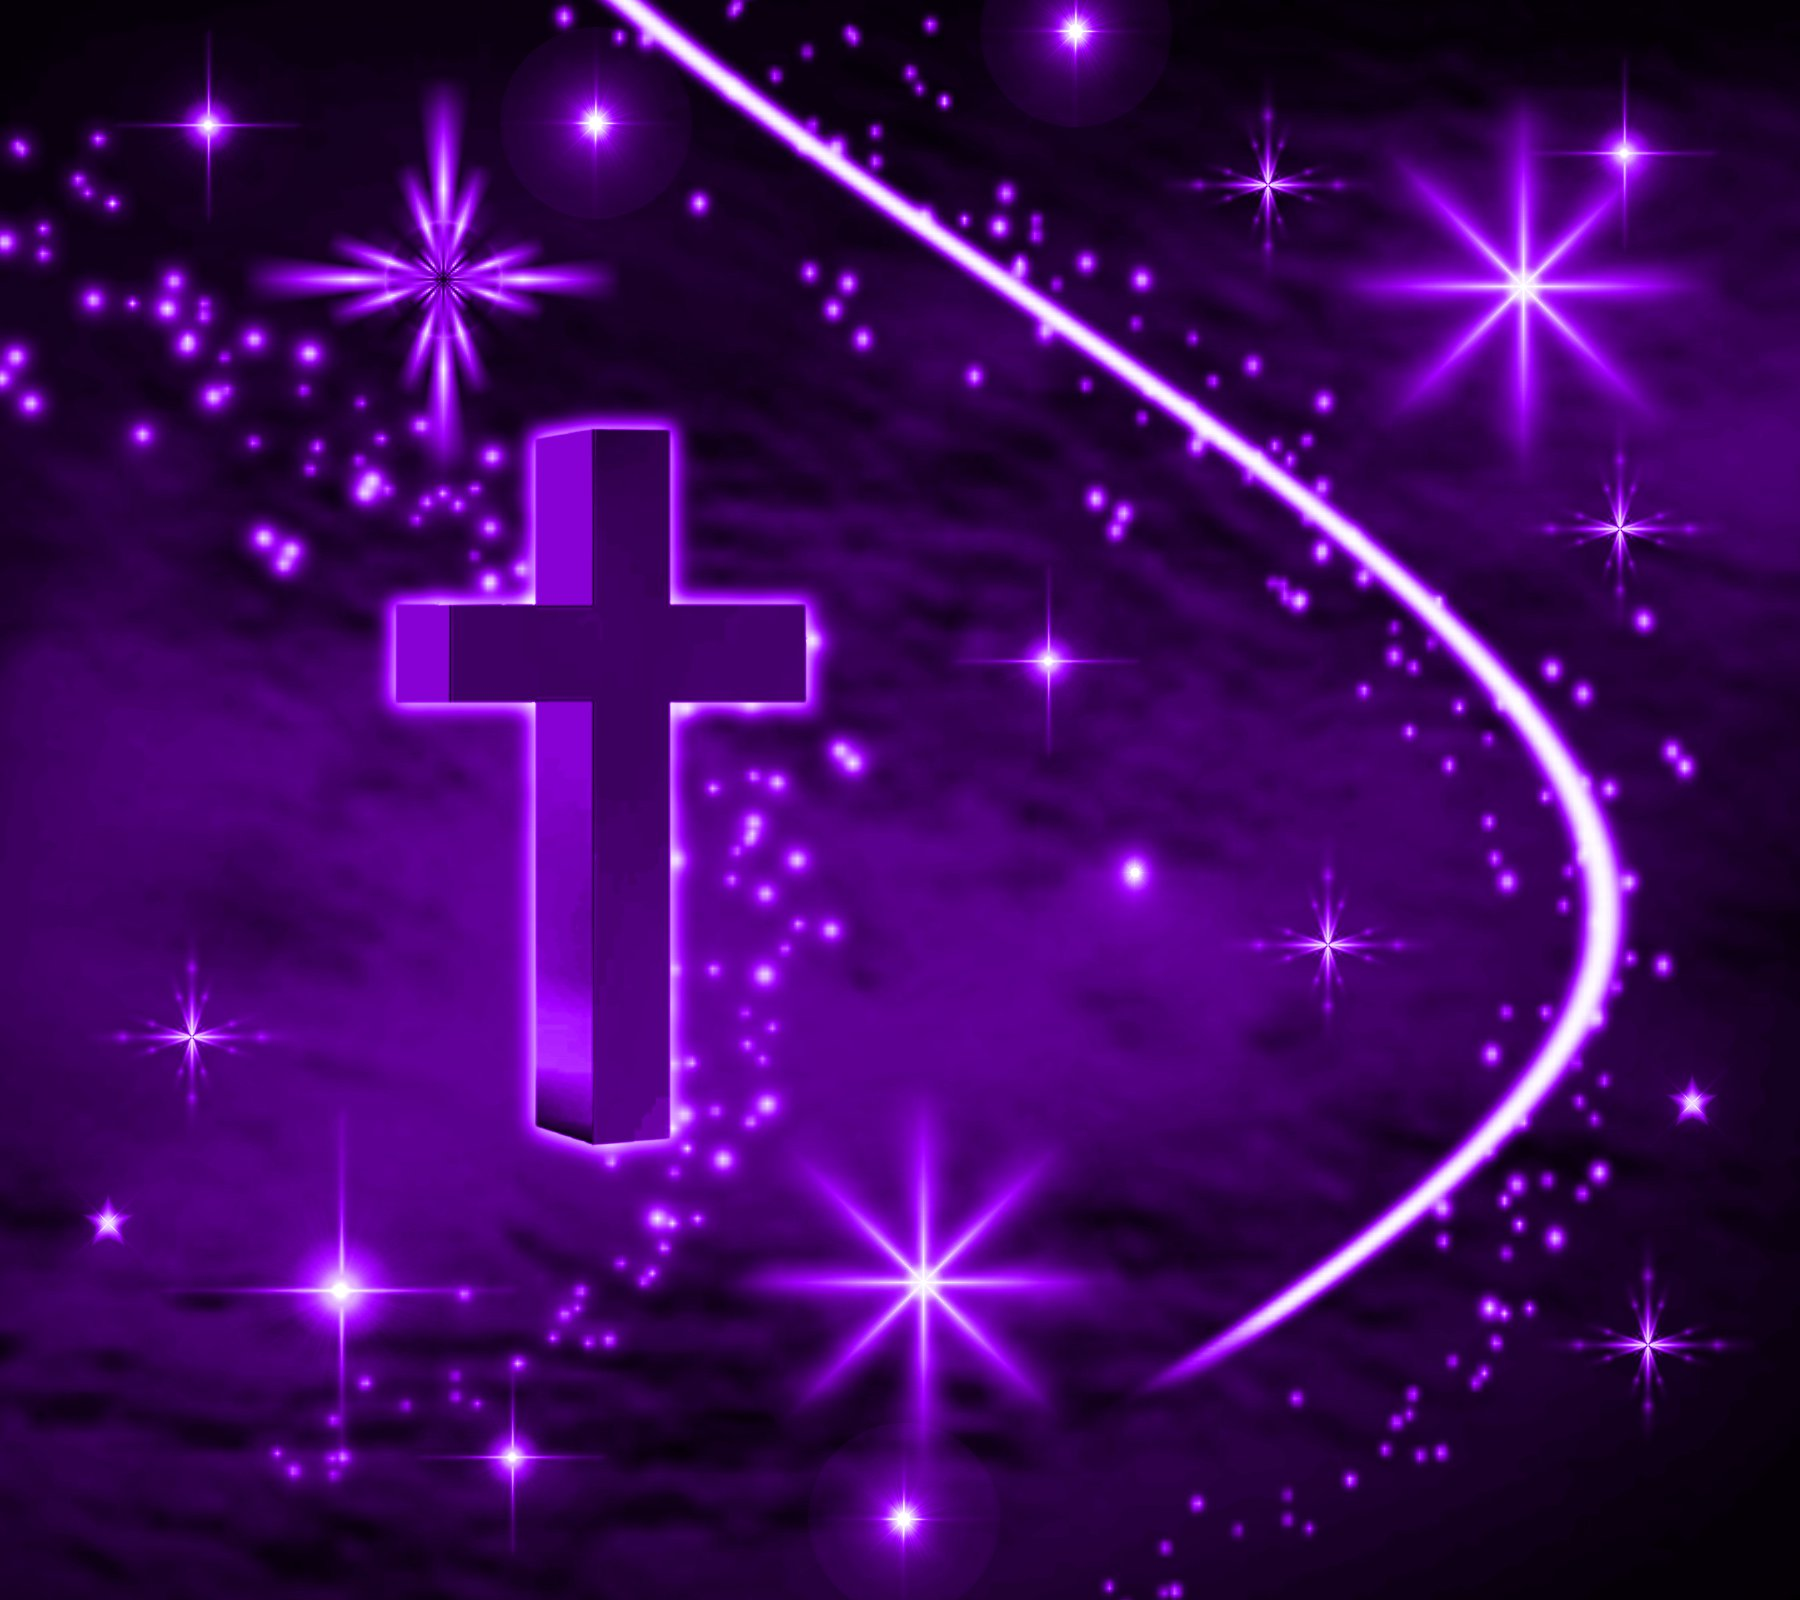 Cross With Stars Background 1800x1600 Background Image Wallpaper 1800x1600